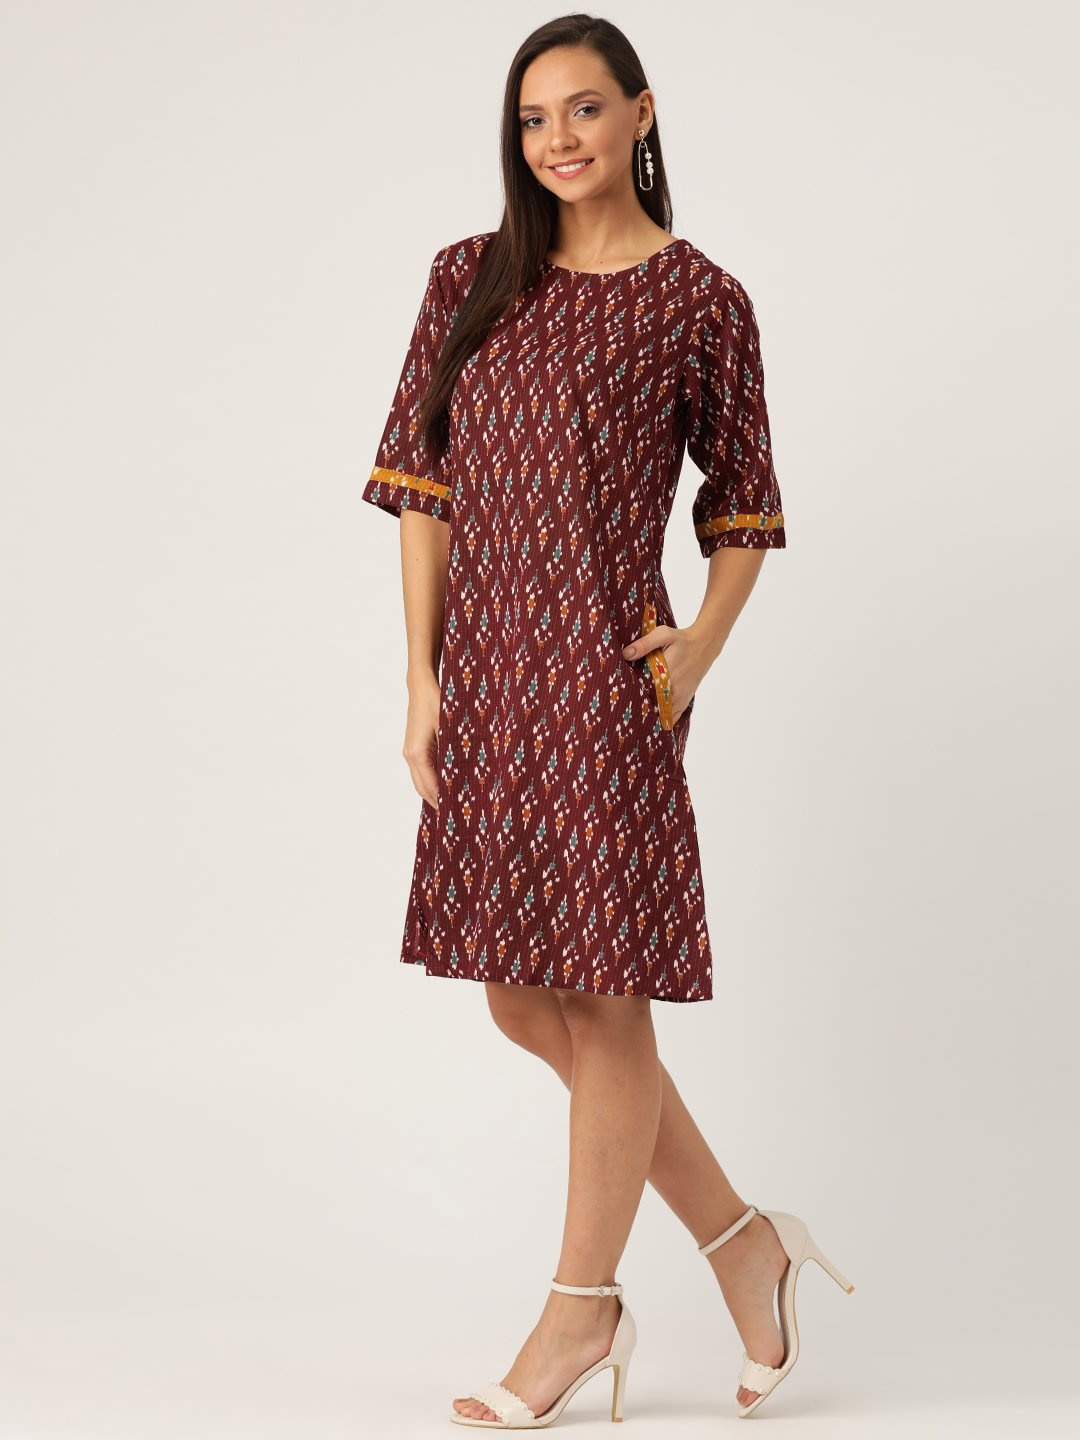 BROWN KANTHA IKKAT DRESS